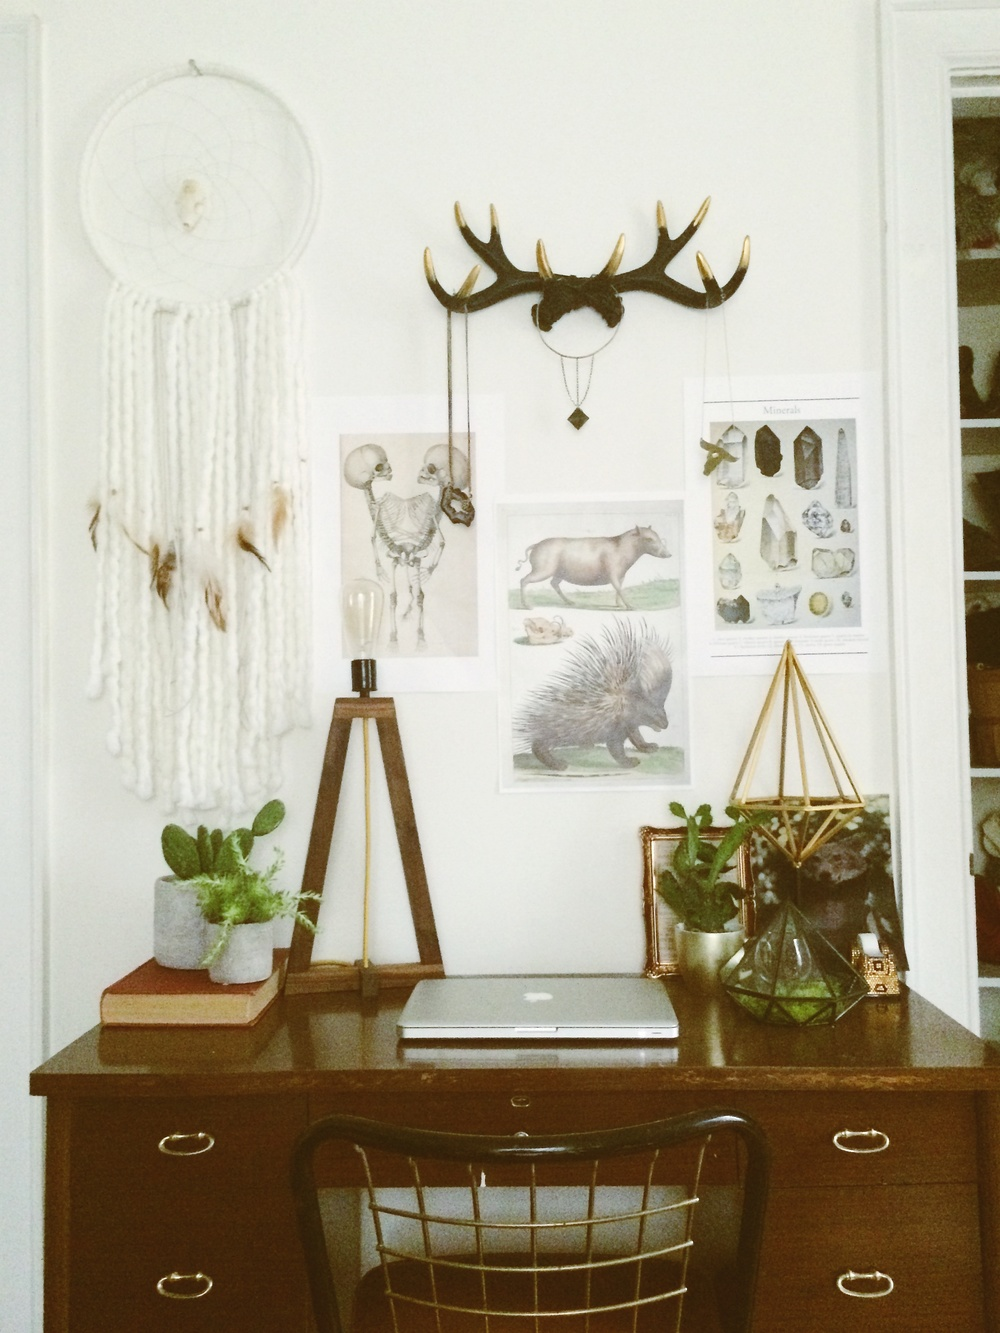 Workspace of Leah Hoffman via bohocollective.com